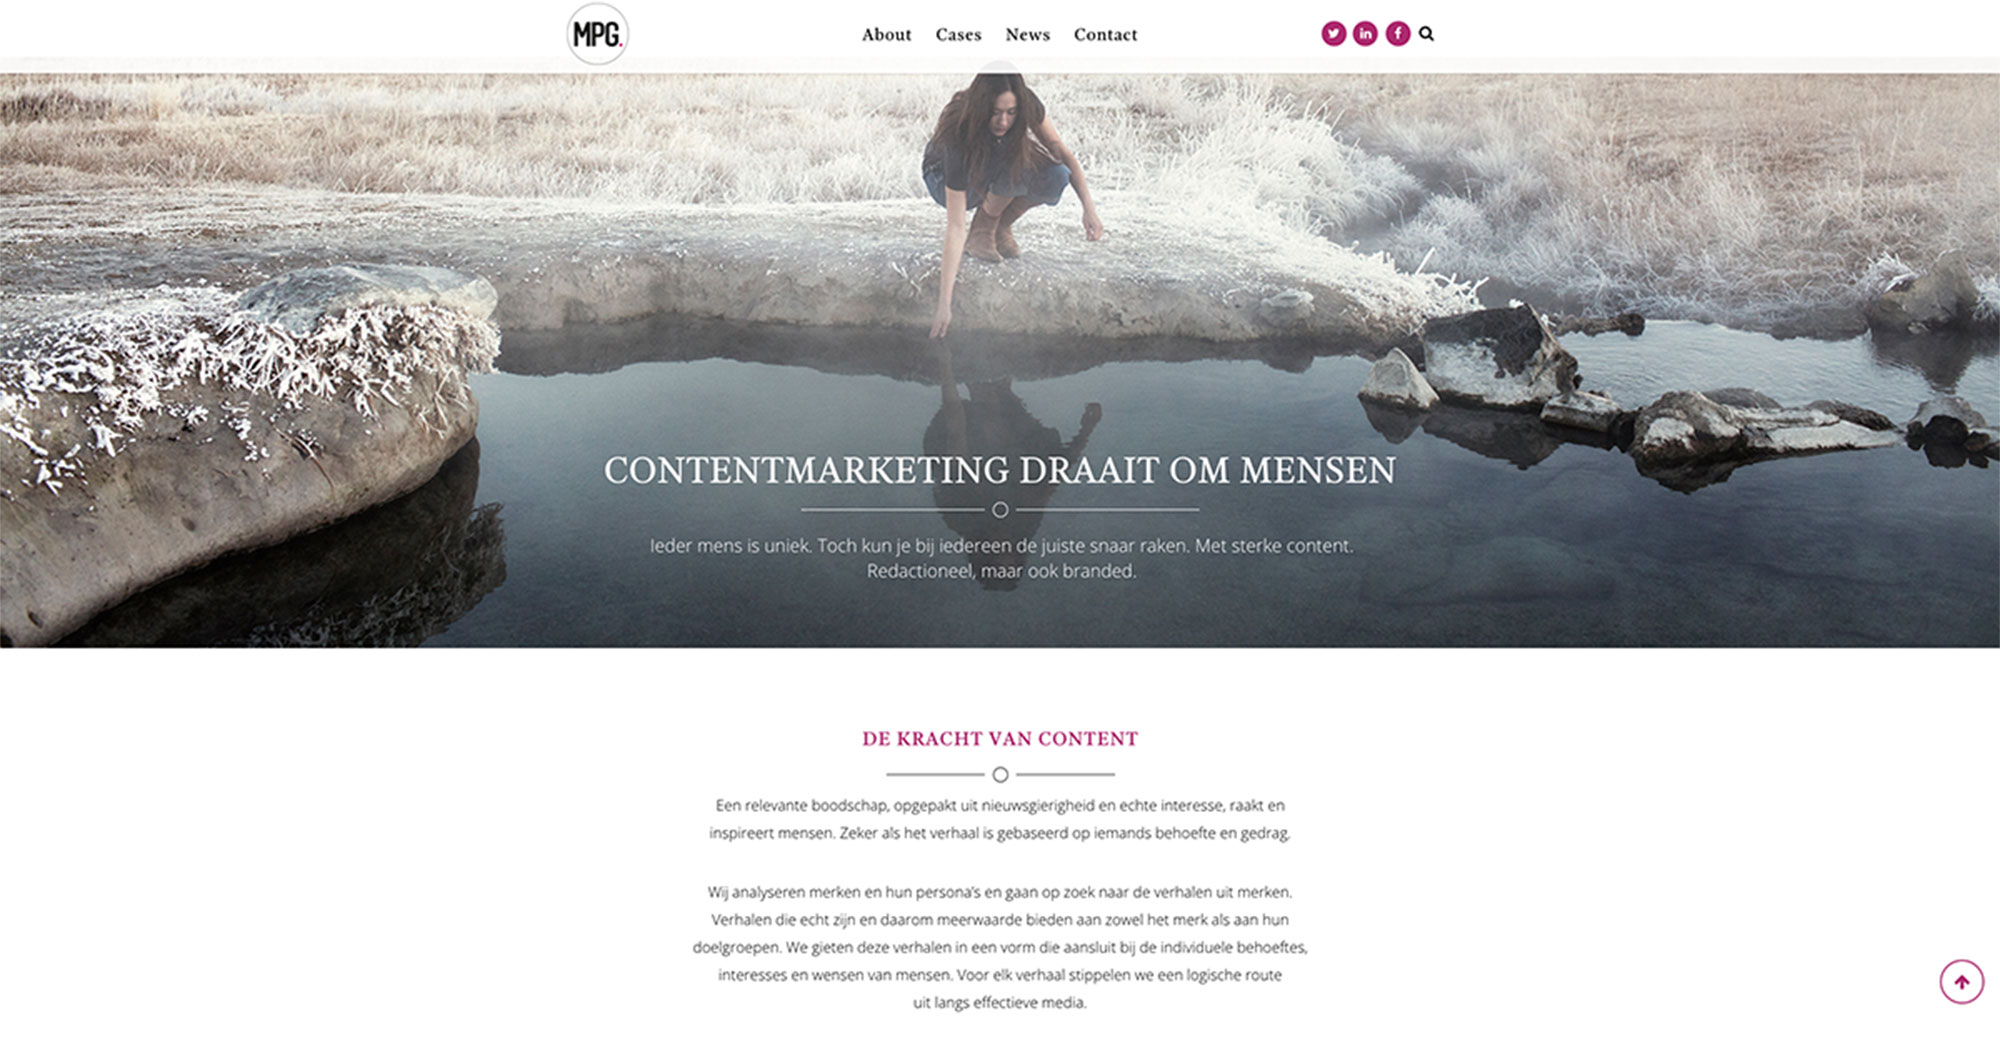 Website MPG.today in opdracht van content-marketingbureau MPG.today